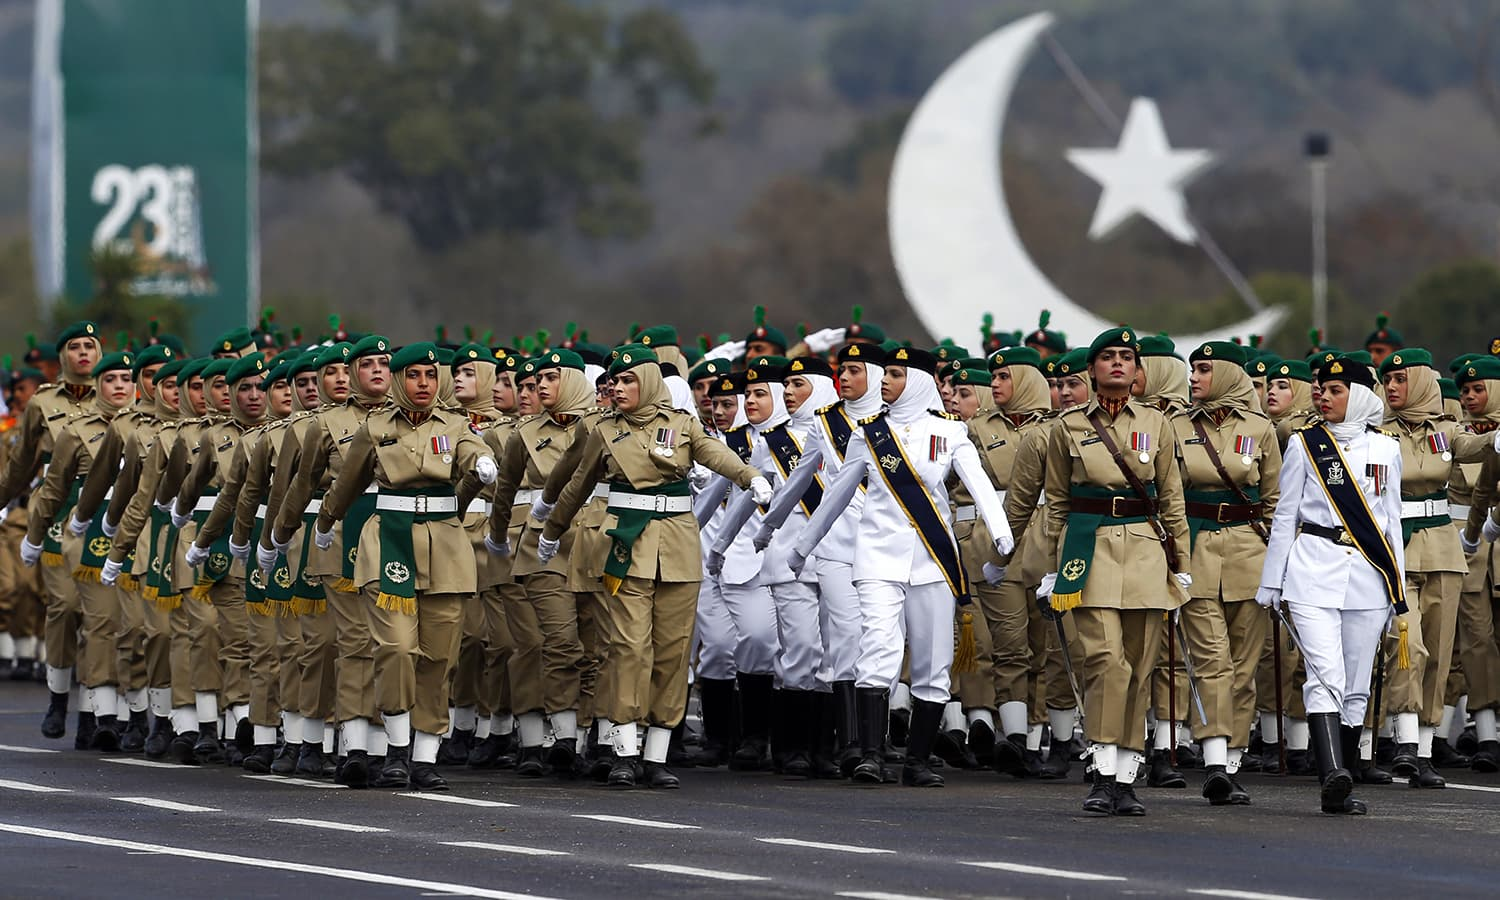 Pakistan Army soldiers march during a military parade to mark Pakistan Day in Islamabad on March 23, 2019. ─ AP